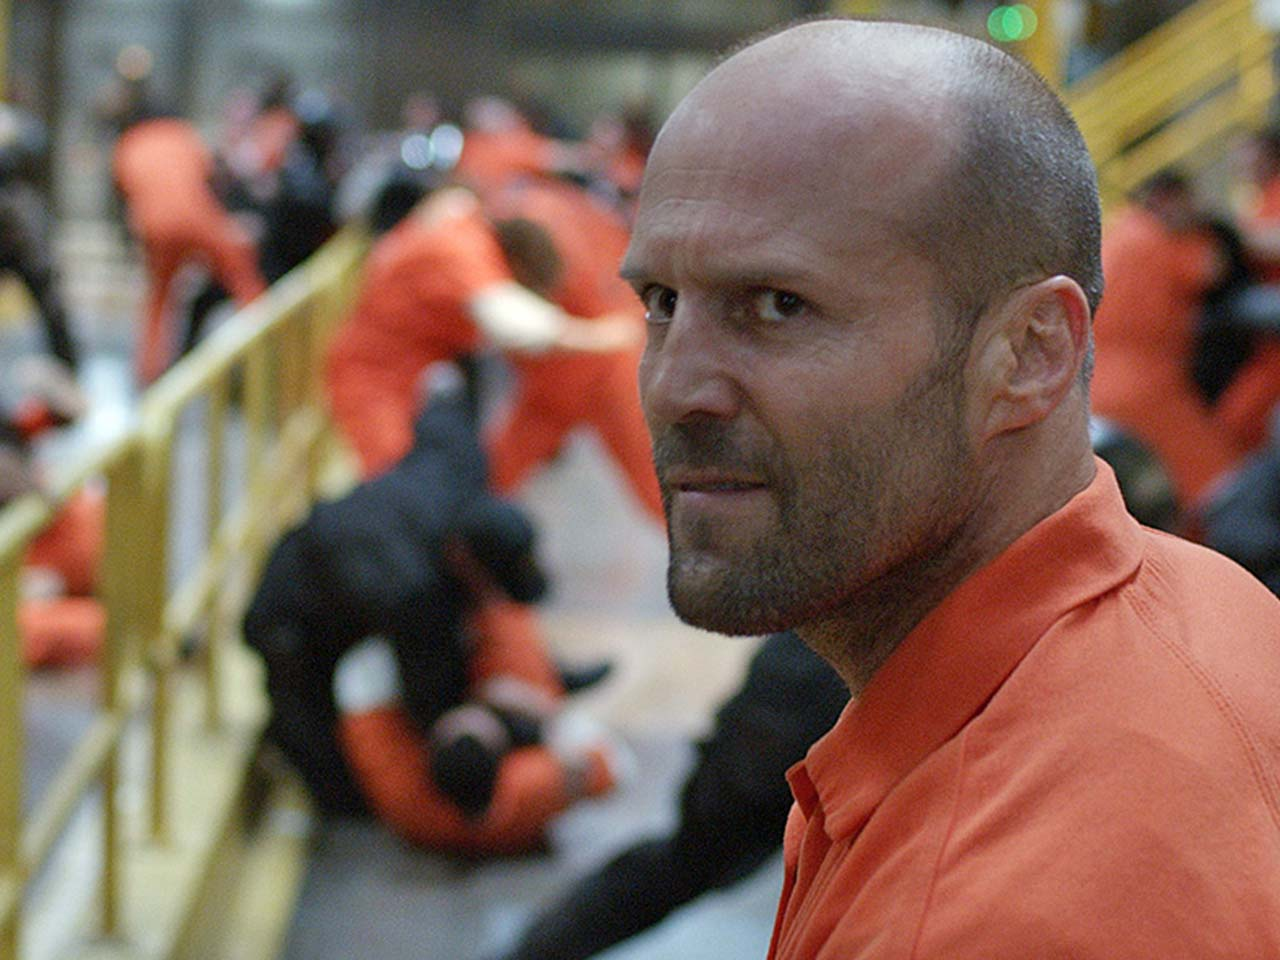 Jason Statham stars as Deckard Shaw in 'Fate of the Furious'